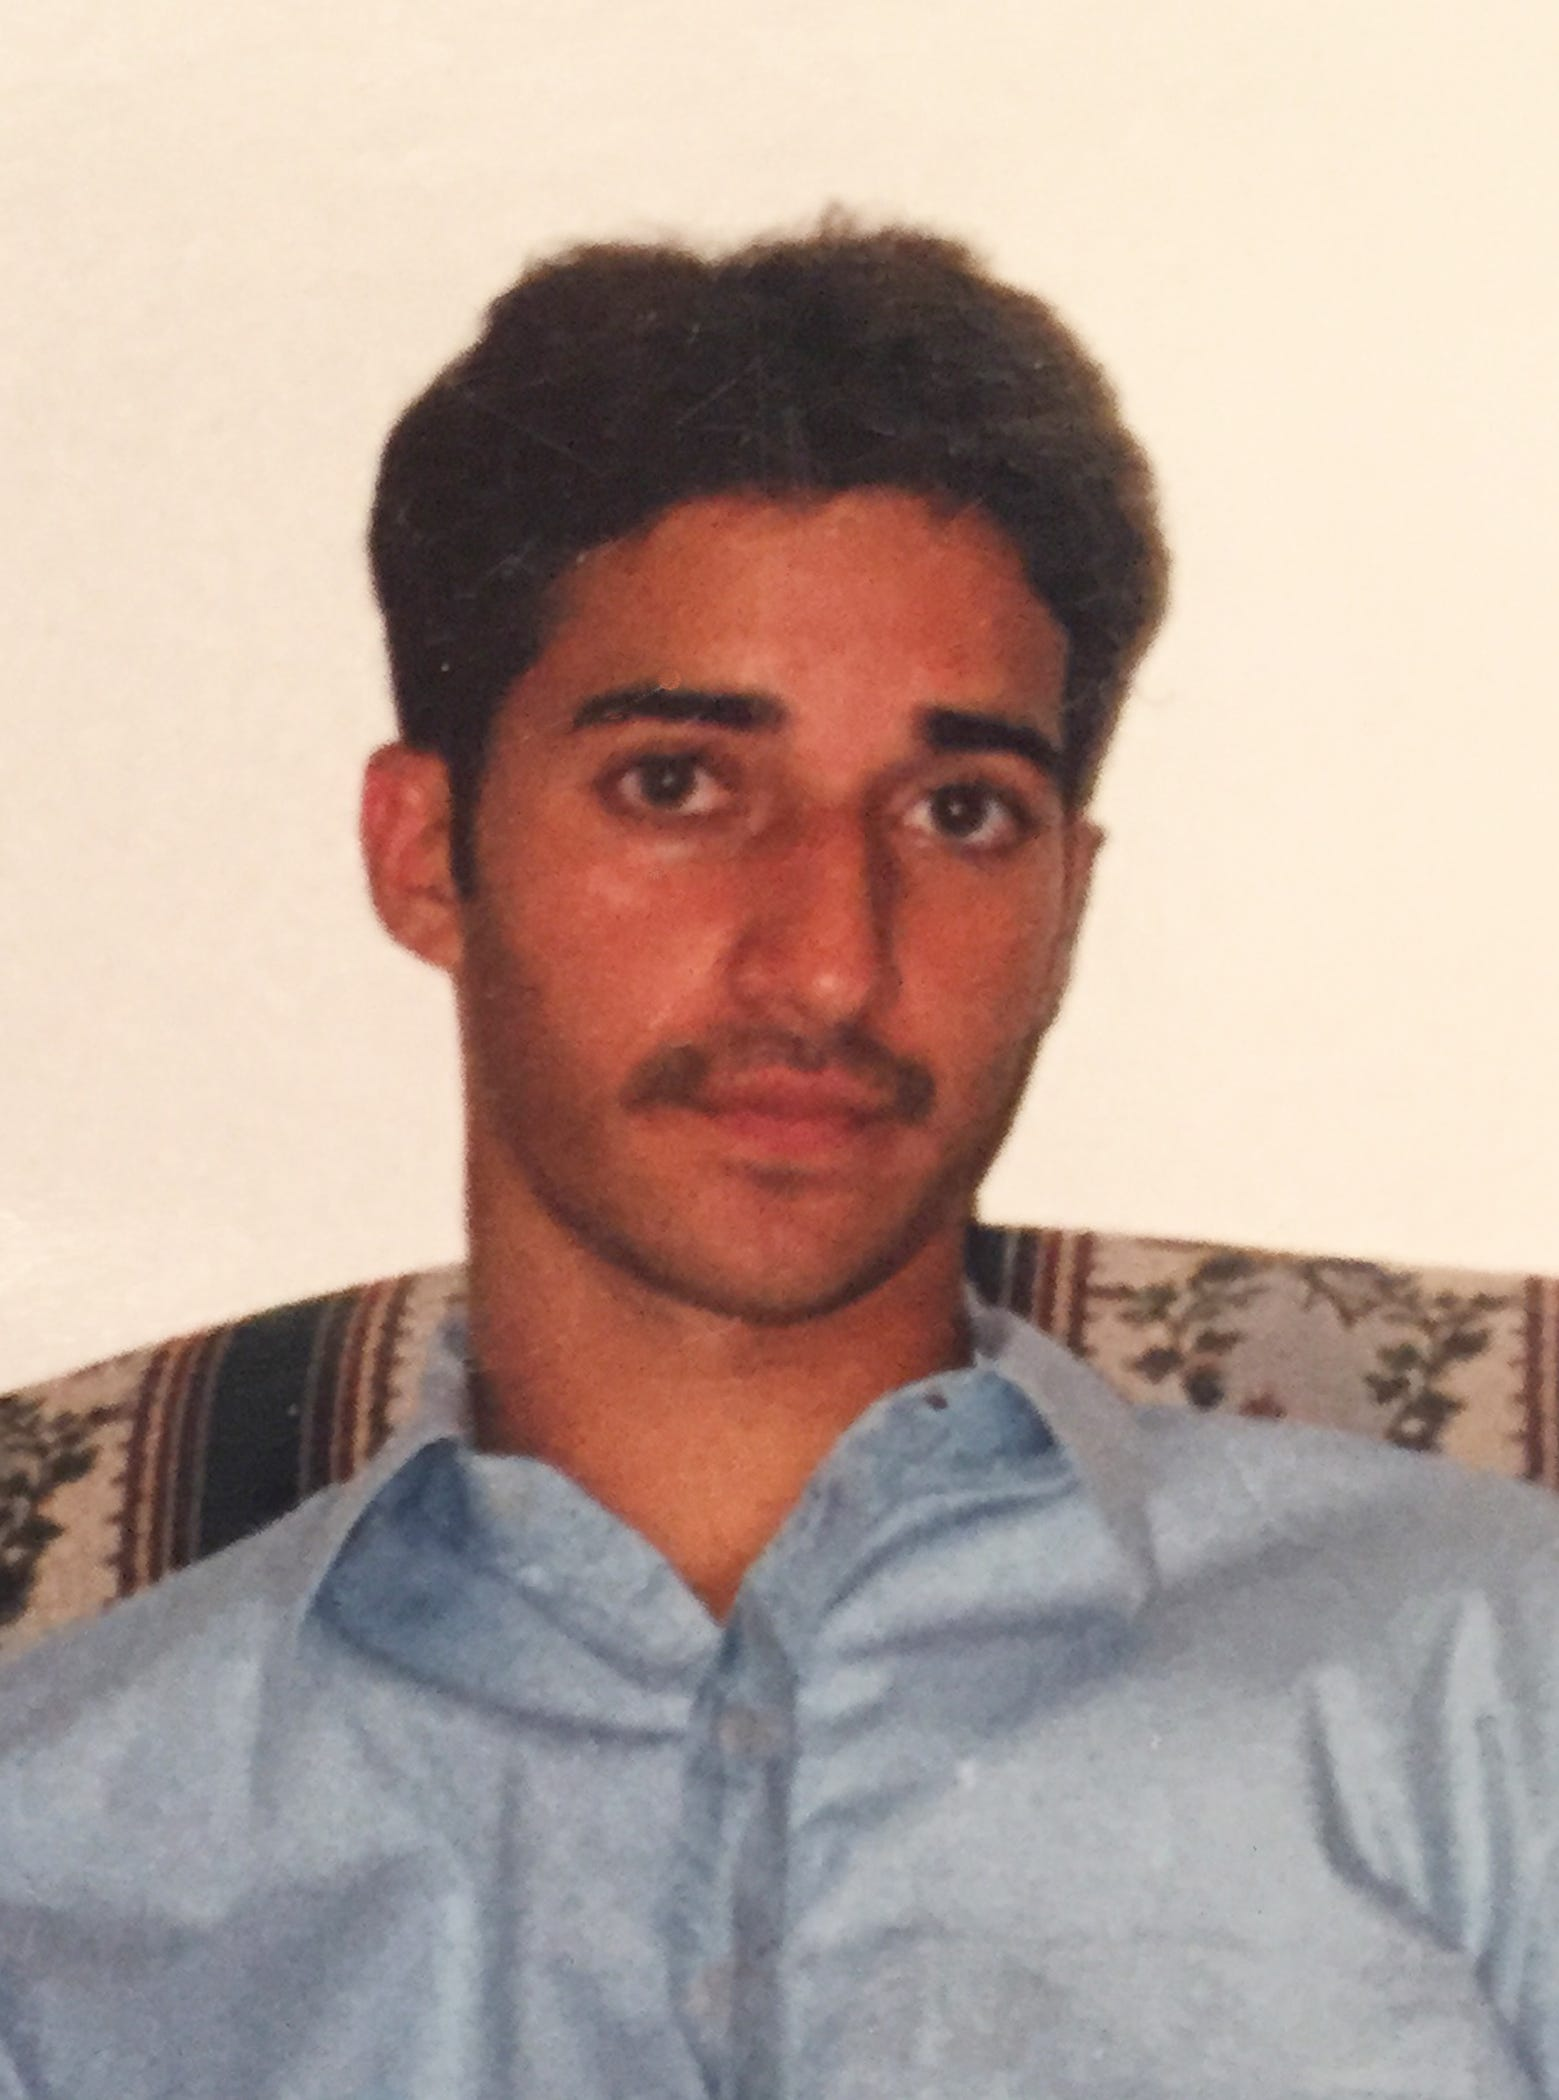 Get Excited: Serial' Is Revisiting Adnan Syed'sCase Get Excited: Serial' Is Revisiting Adnan Syed'sCase new pics